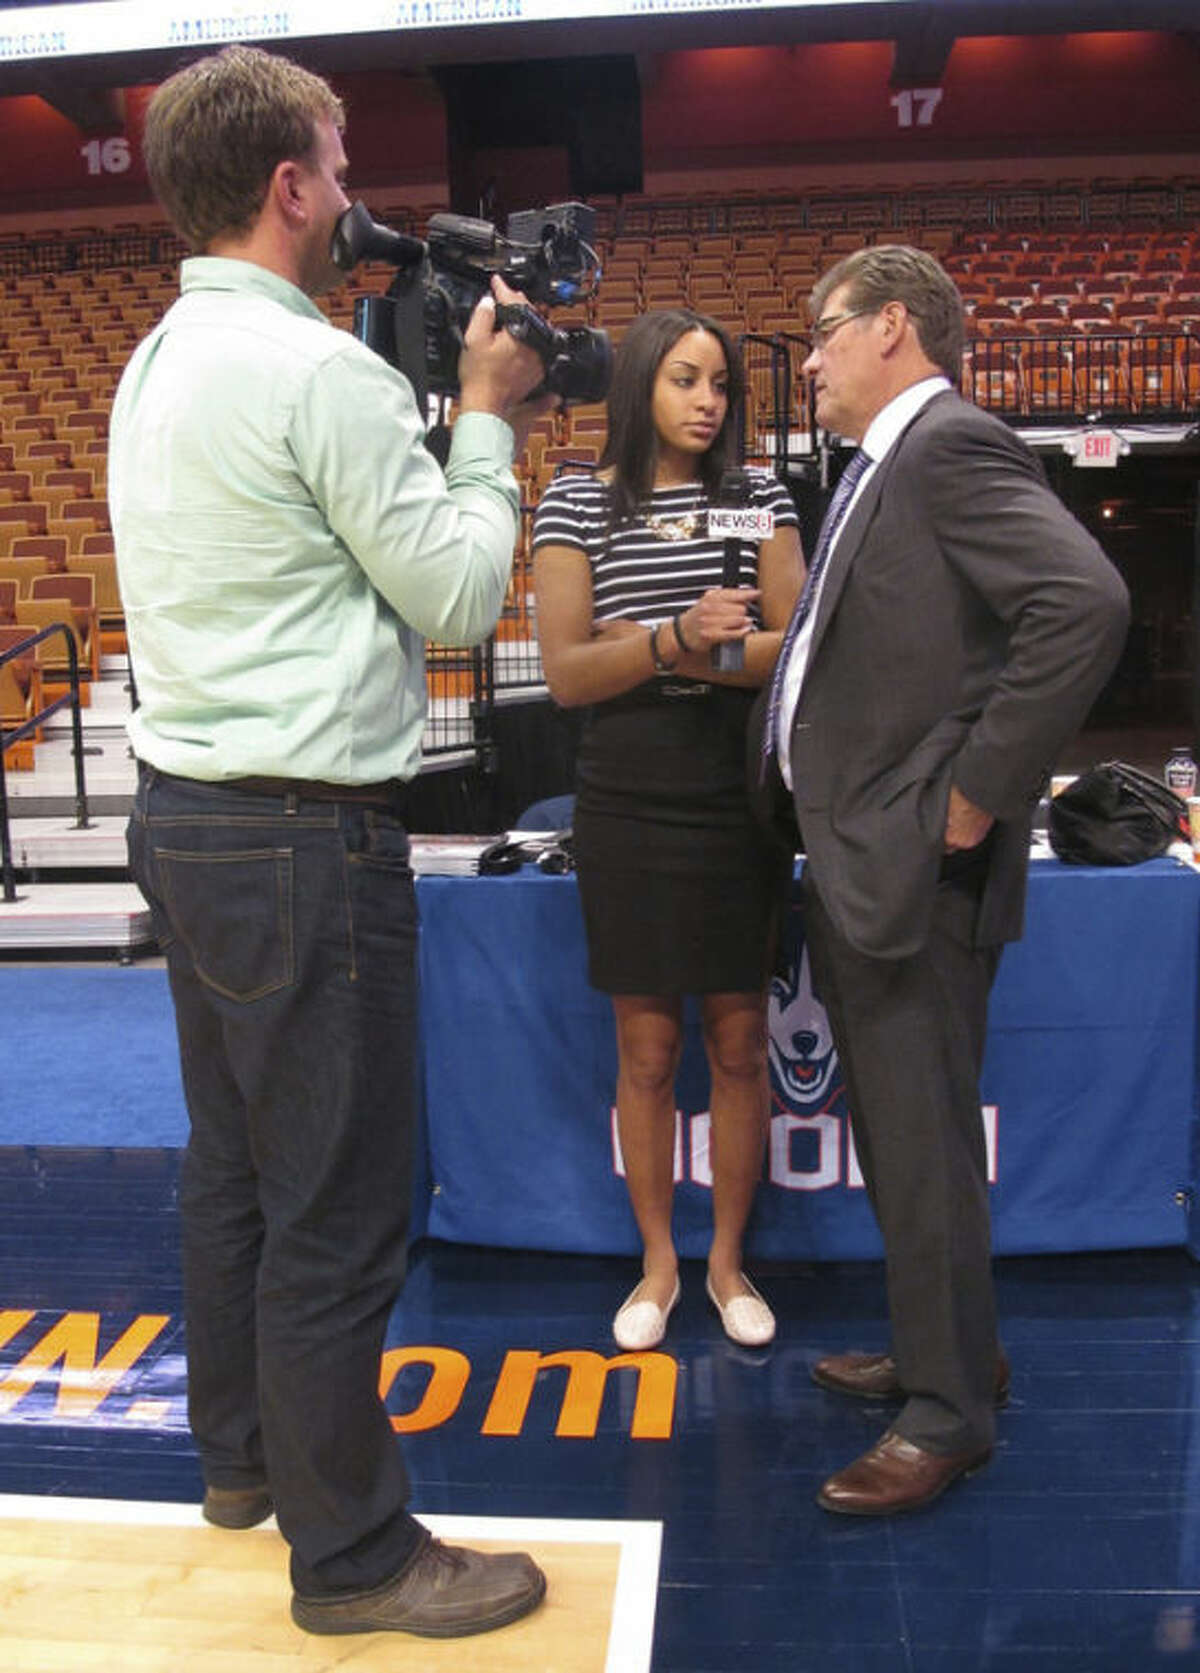 Connecticut women's basketball guard Bria Hartley, center, plays interviewer with coach Geno Auriemma, right, during the American Athletic Conference's women's basketball inaugural media day on Monday, Oct. 14, 2013 at the Mohegan Sun Arena in Uncasville, Conn. (AP Photo/Pat Eaton-Robb)